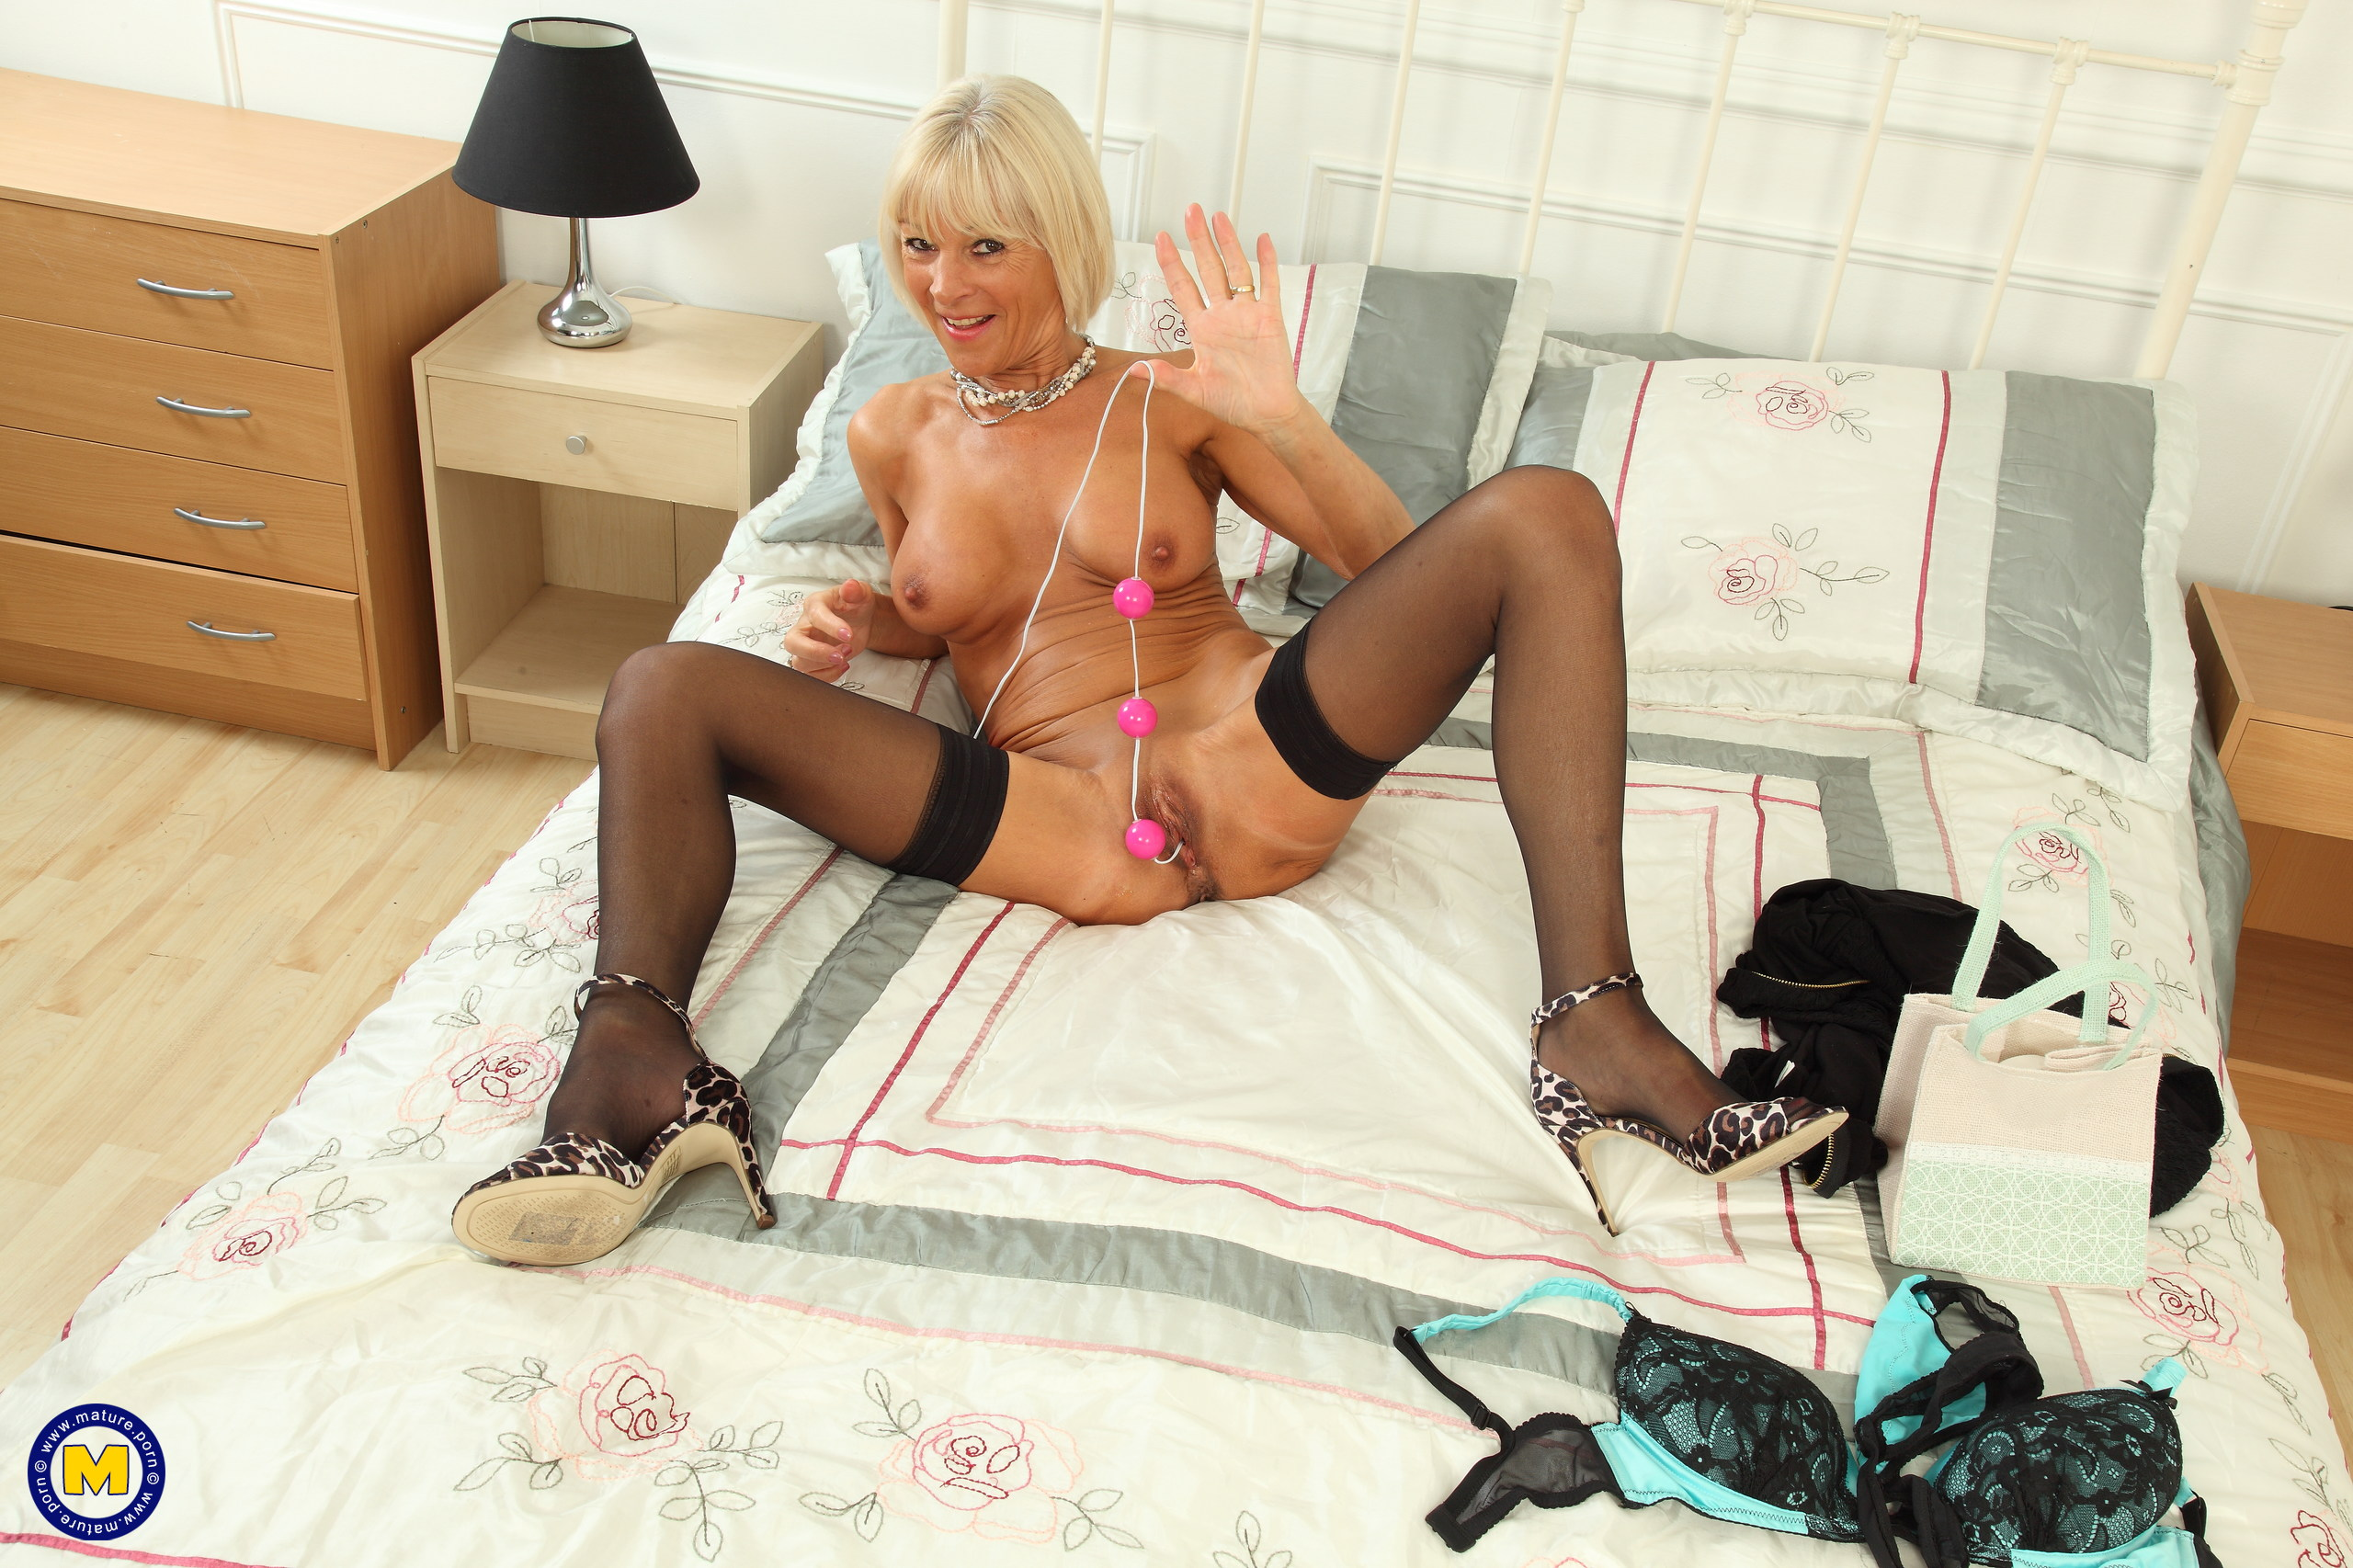 Nasty Brit housewife toying with her culo boinking beads